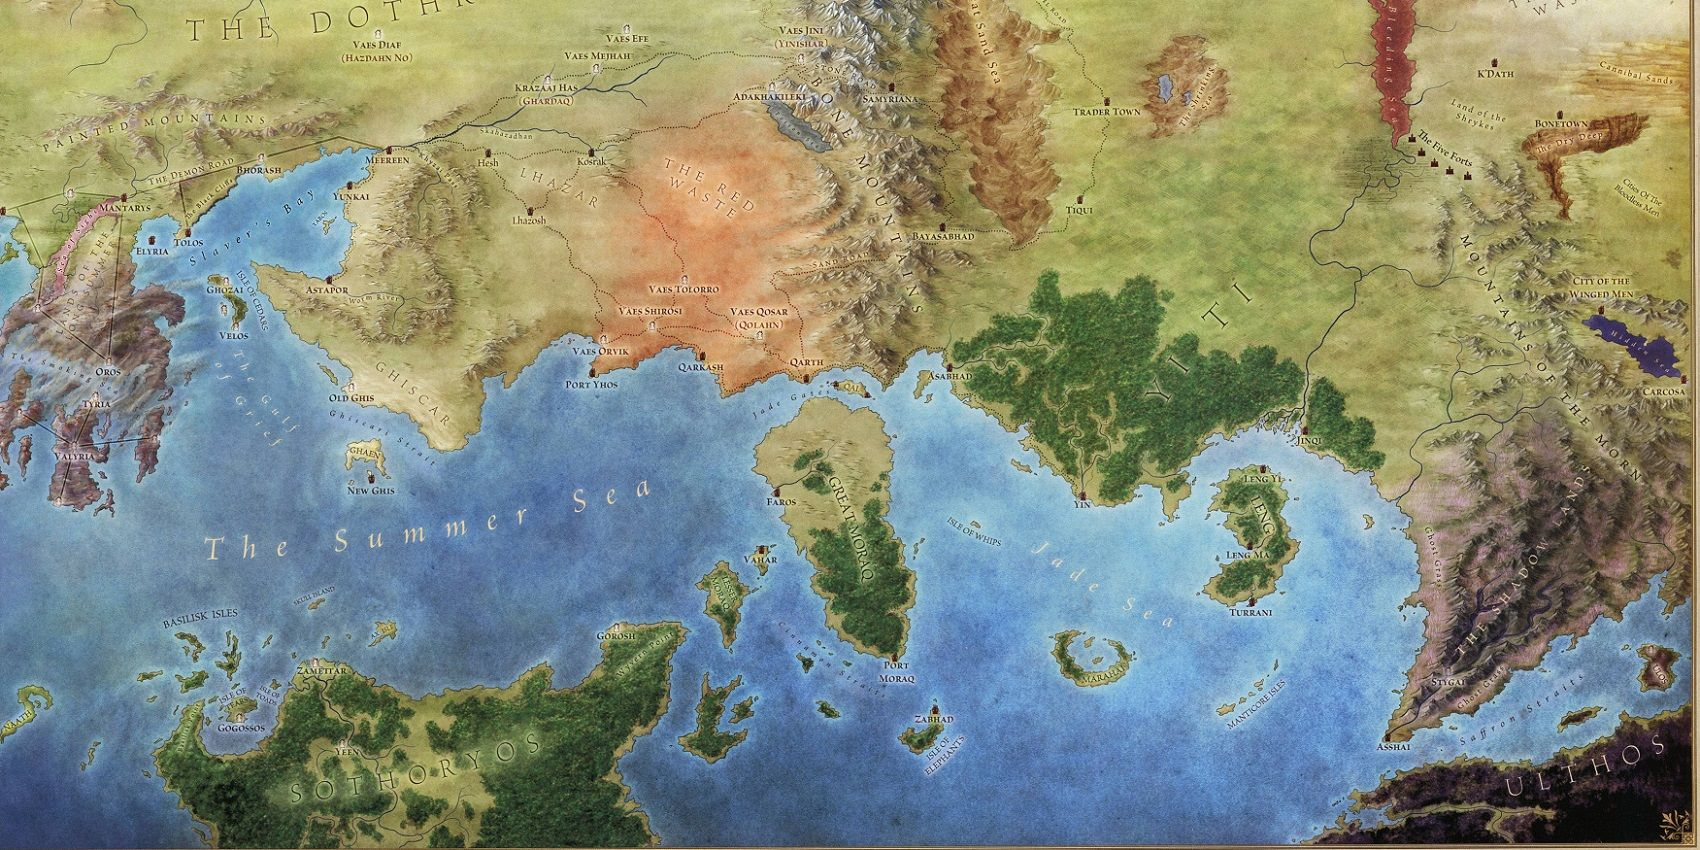 map of westeros. sothoryos and ulthos - Google-Suche   A ...  map of westeros...